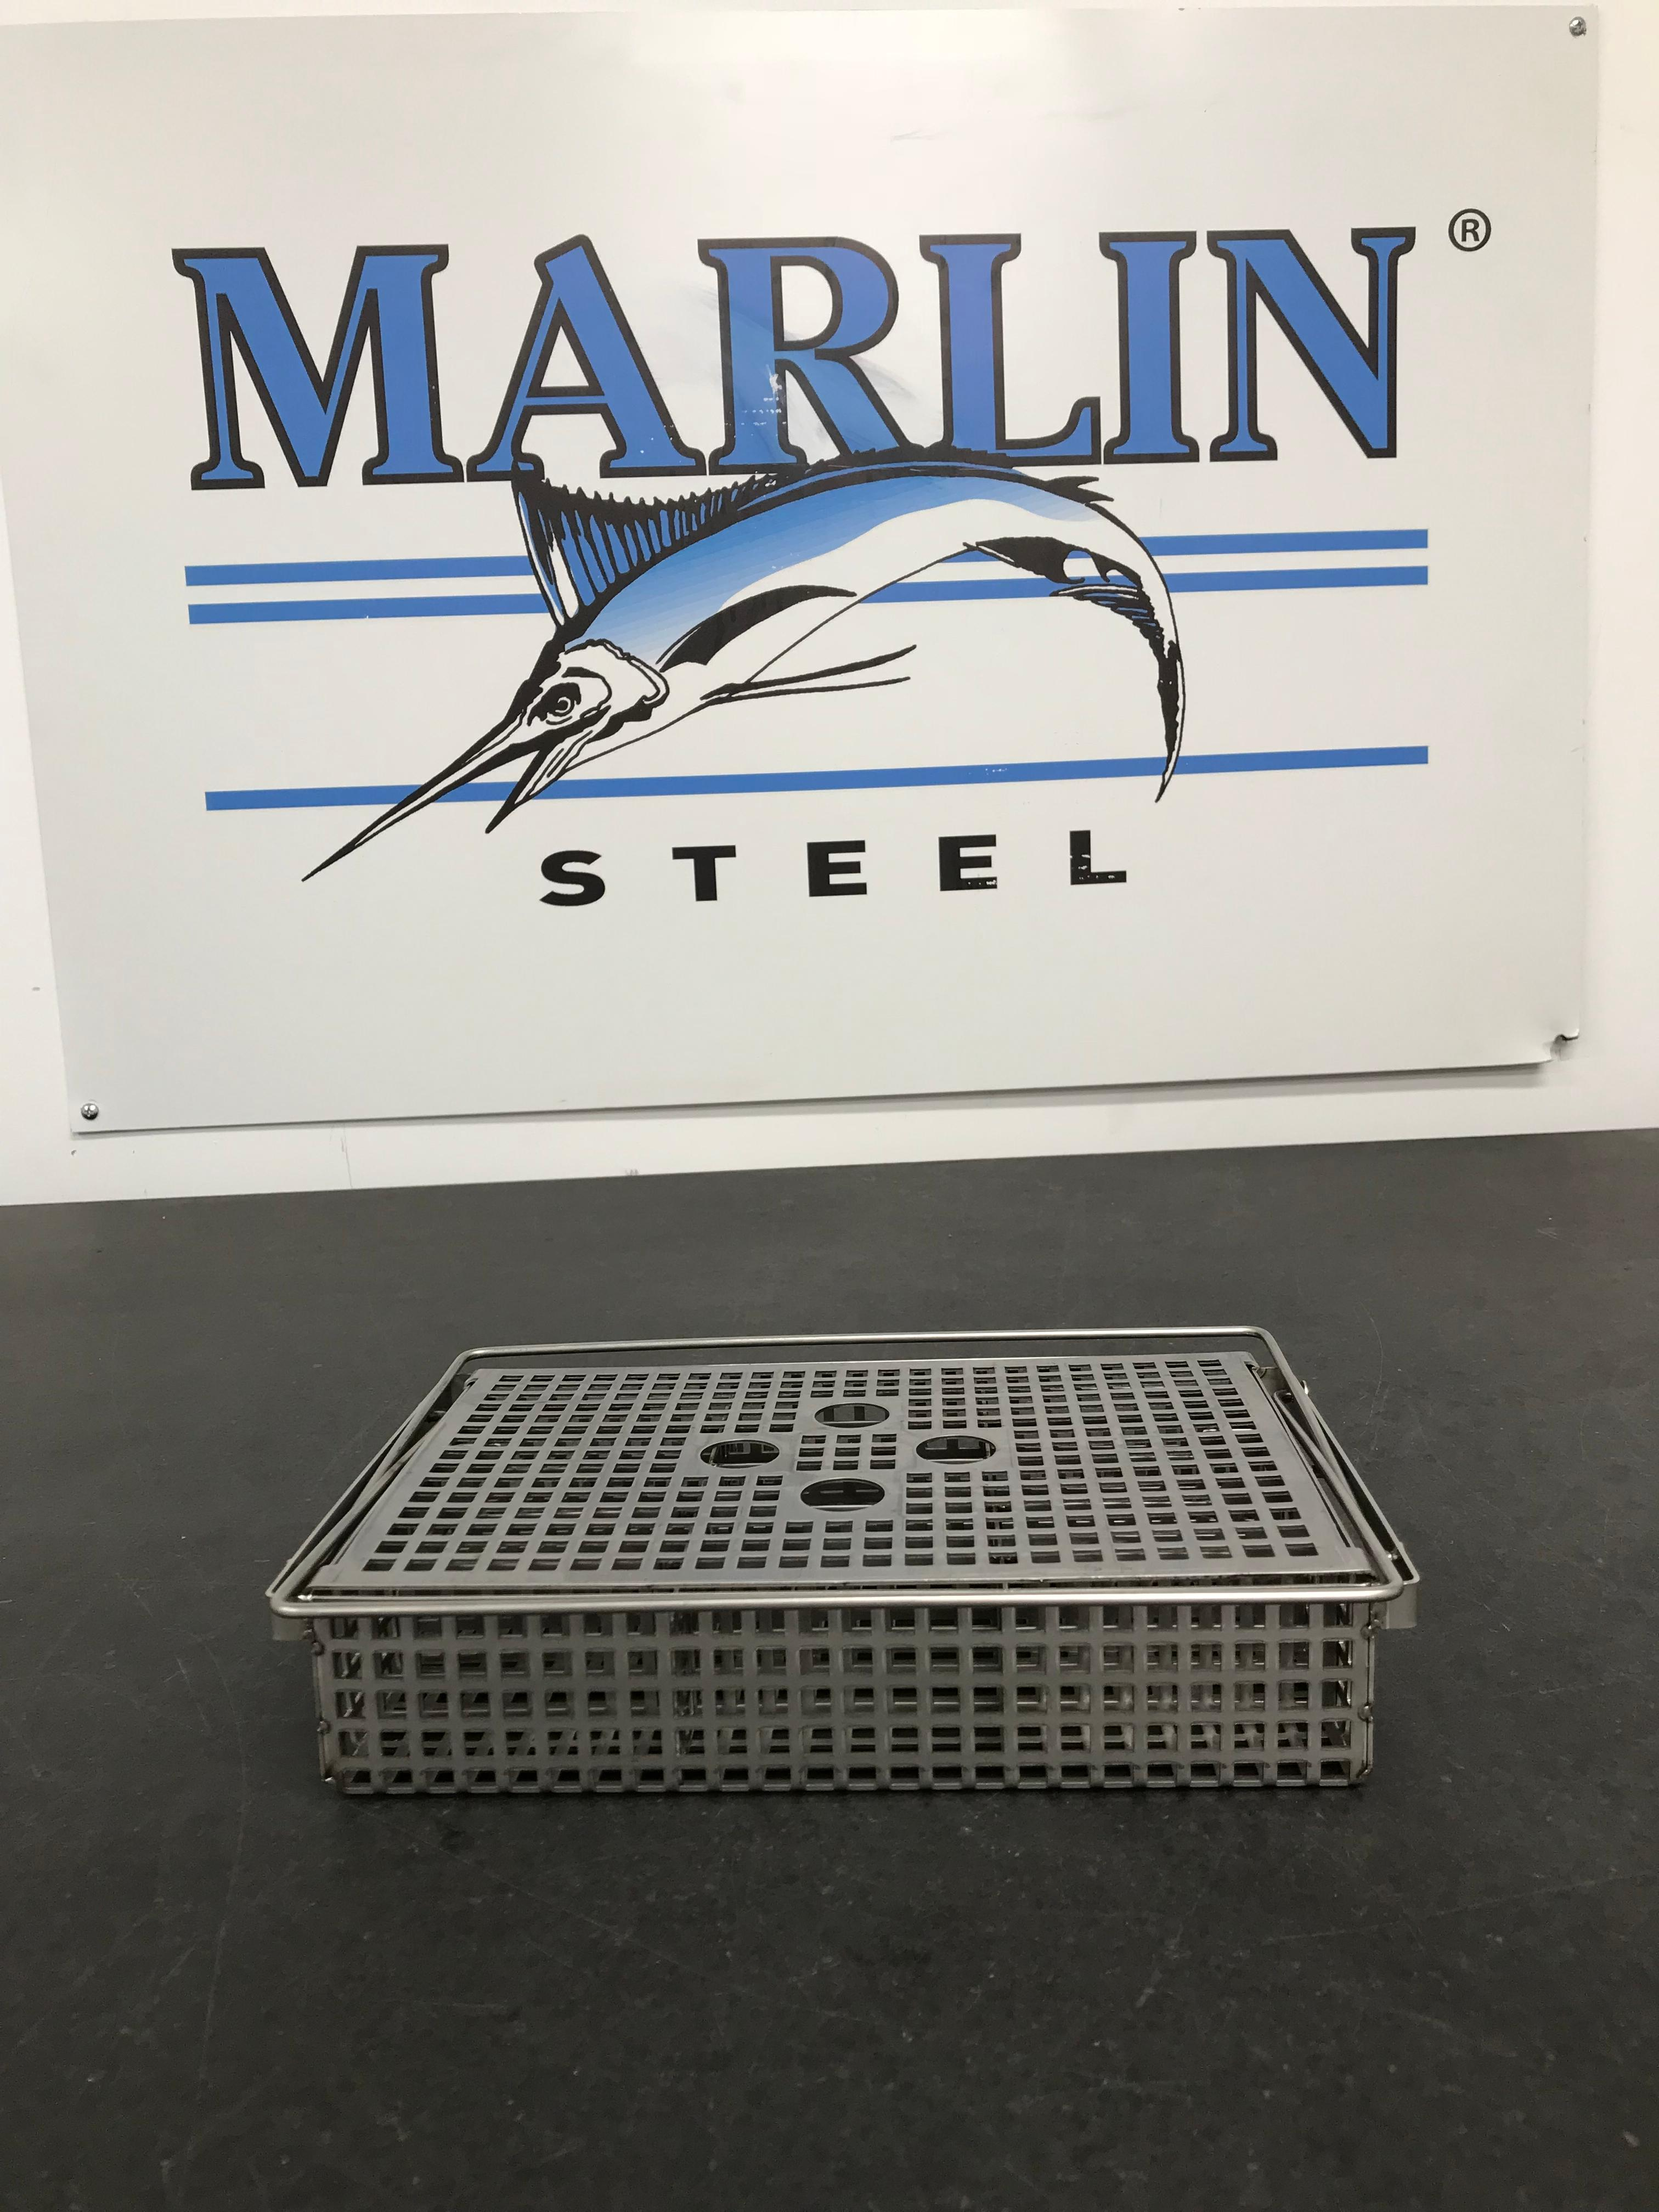 A stainless steel sheet metal basket for holding medical cassettes through a rigorous sterilization process.